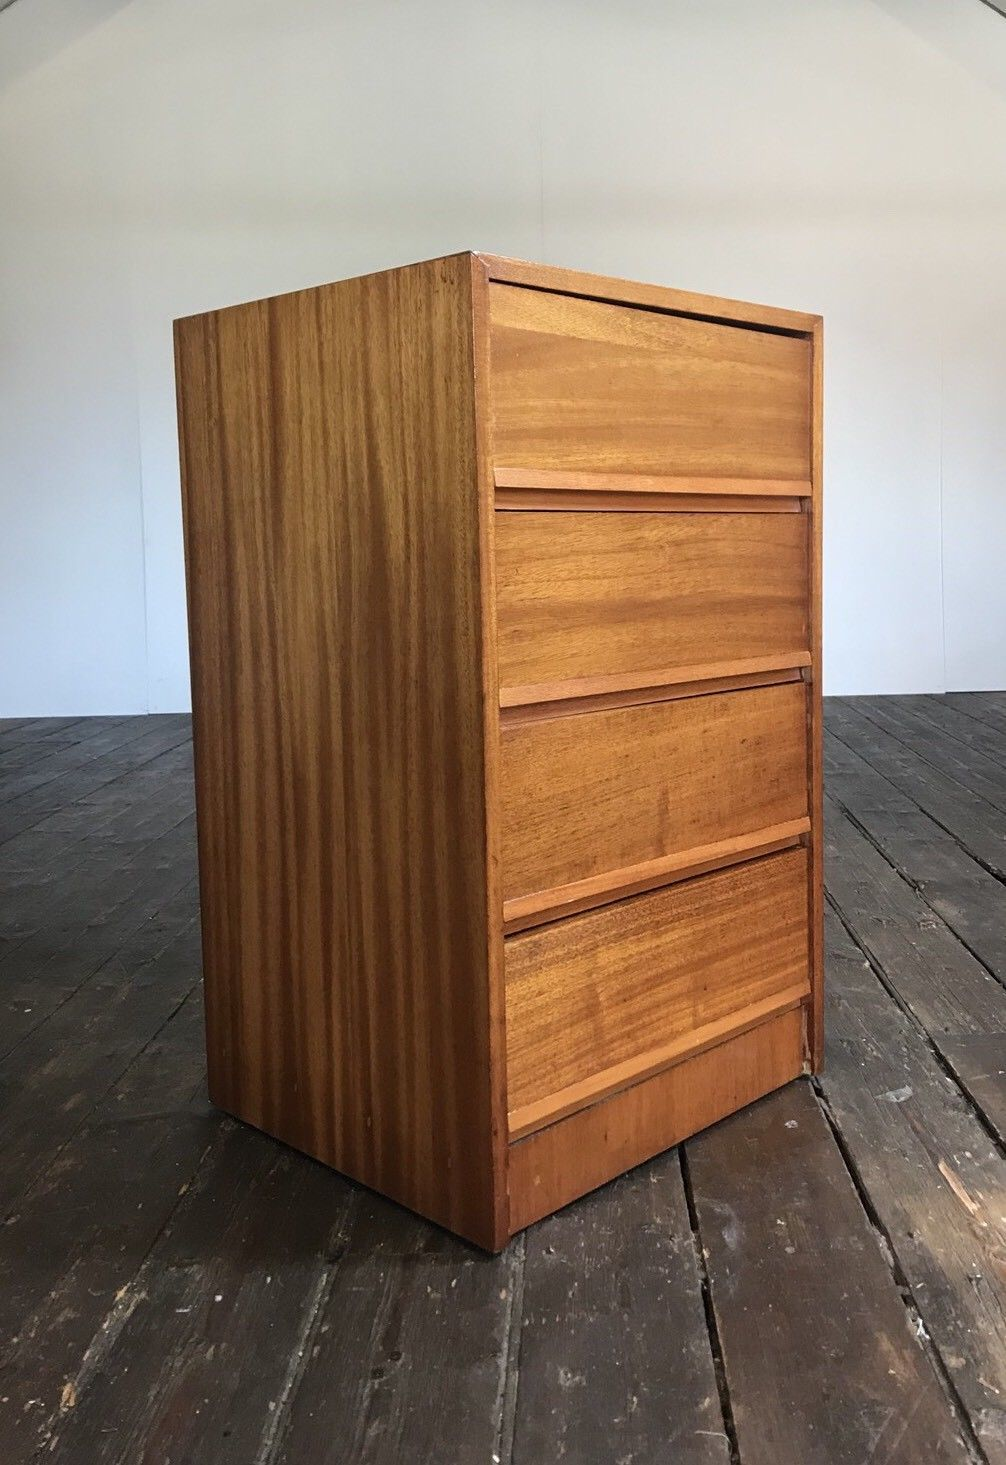 vtg-mid-century-slant-fronted-chest-drawers-danish-design-retro-60s-70s